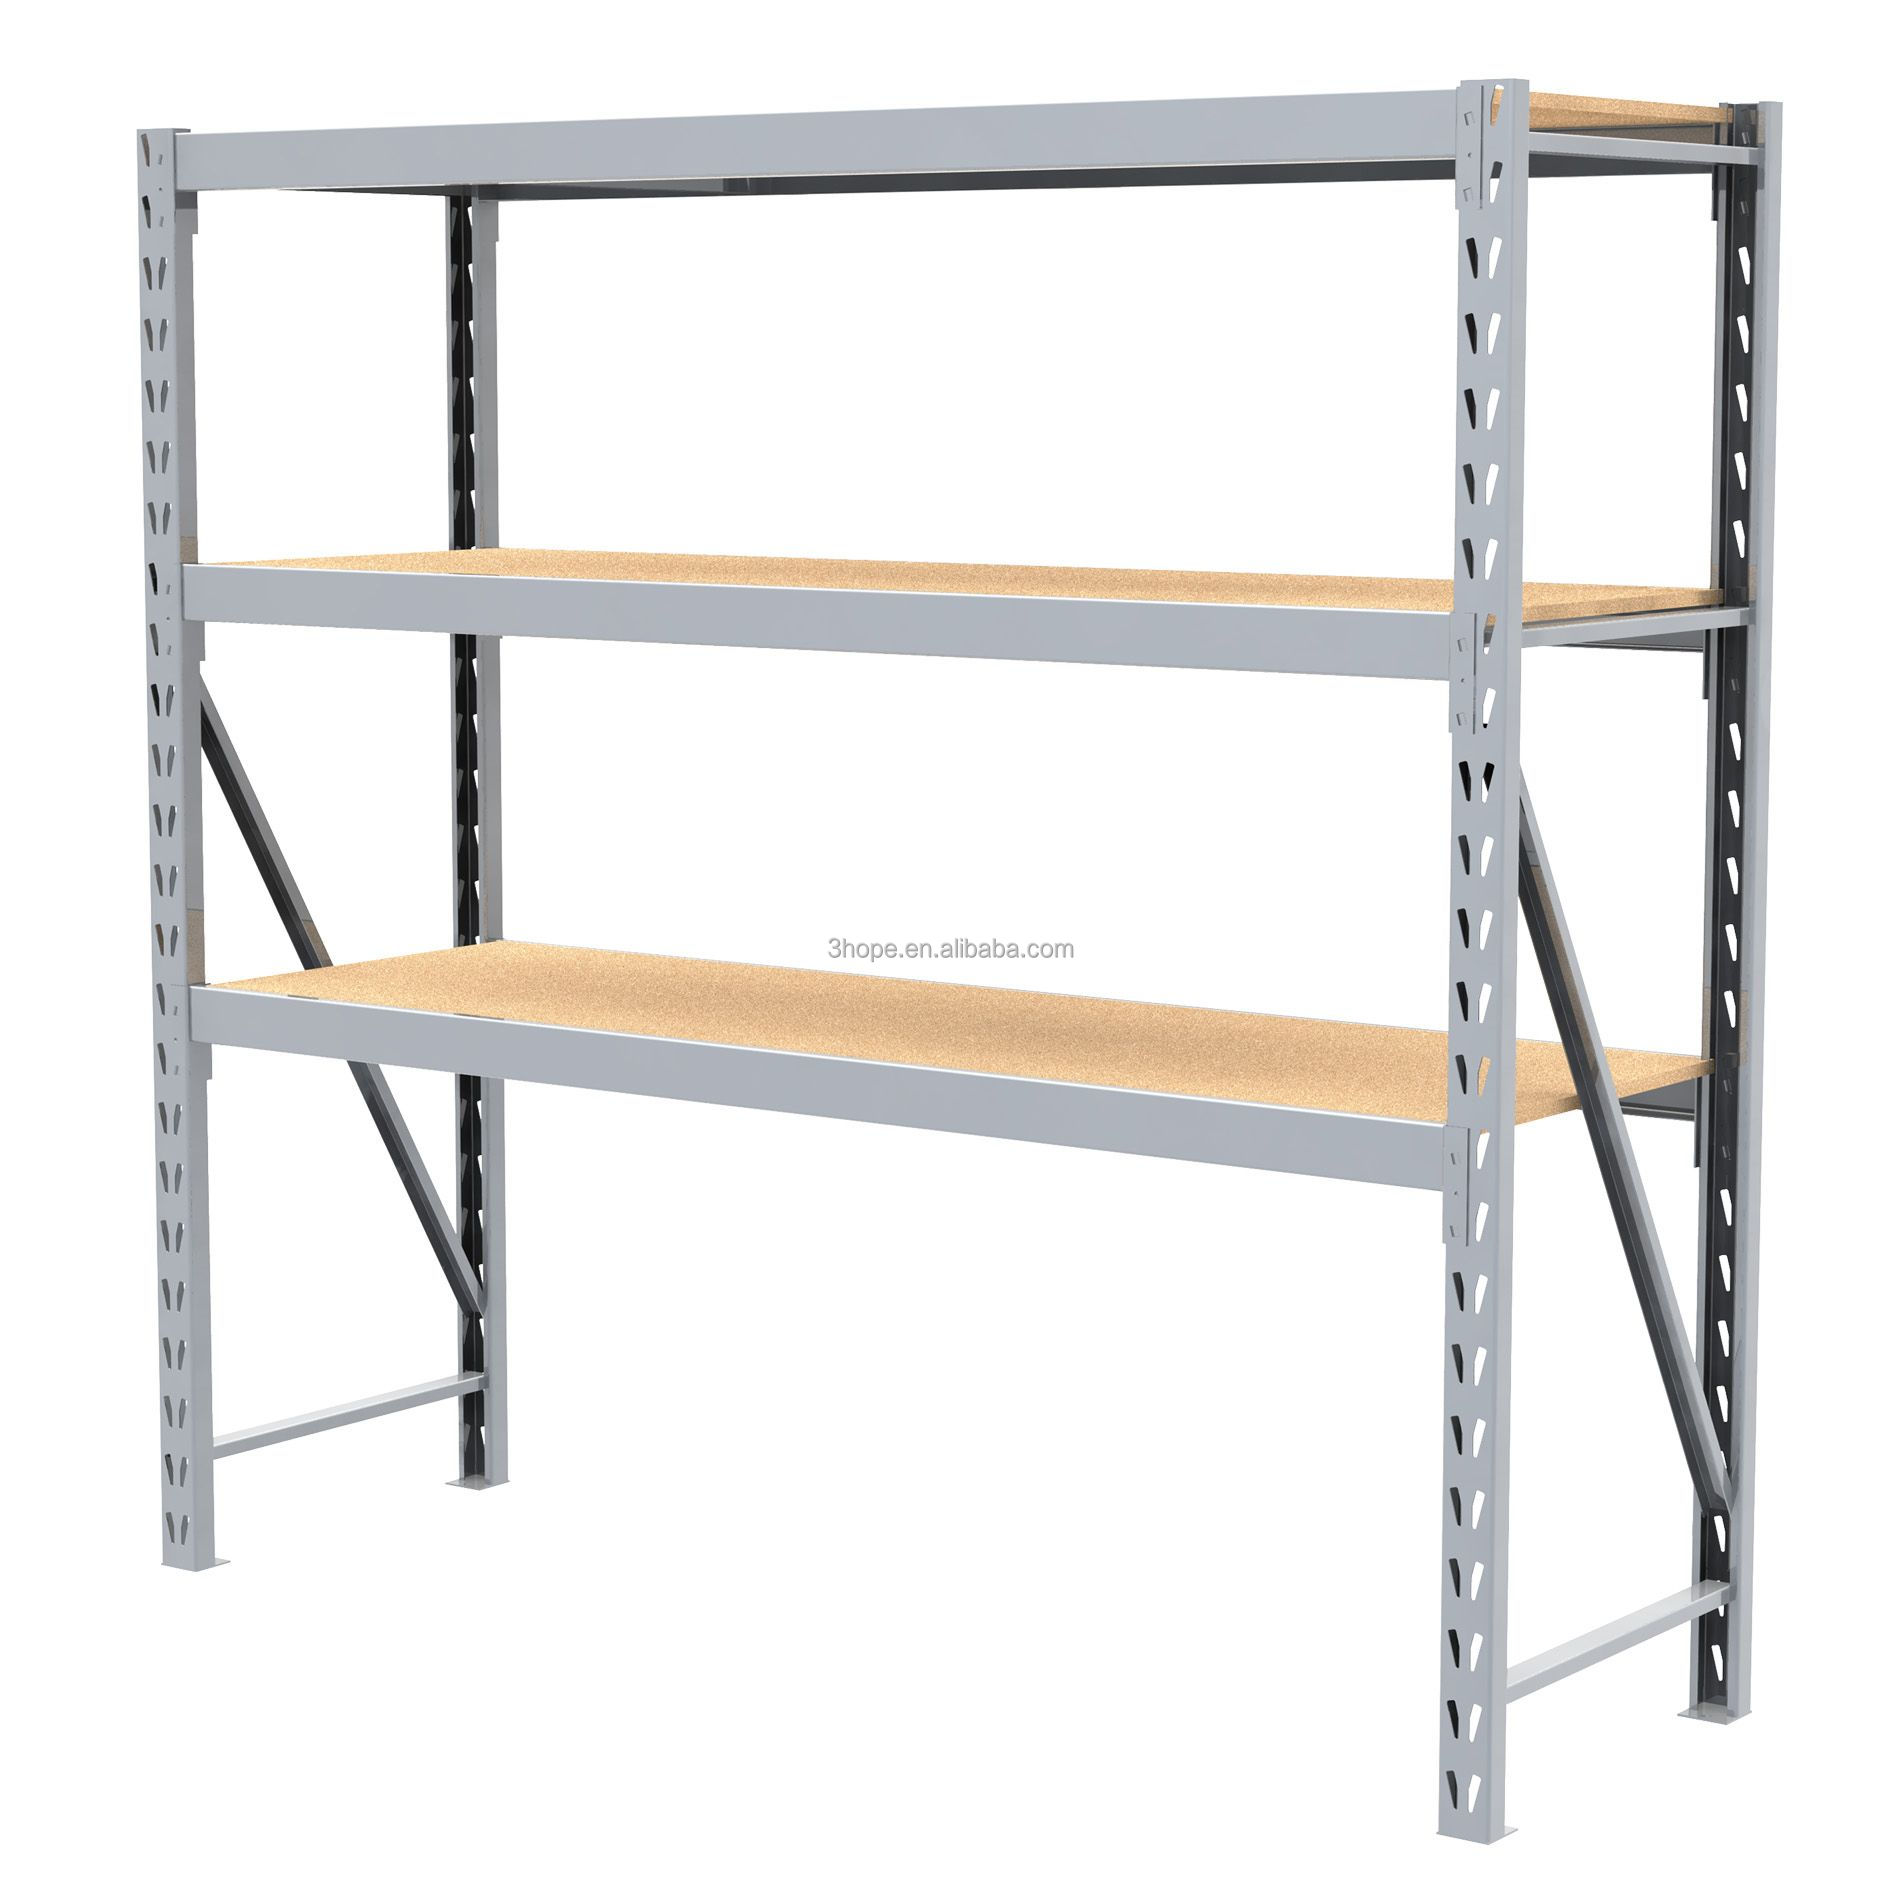 new mhe racking material conveyor pallet rack used steel handling htm shelving lockers warehouse equipment bulk industrial racks storage